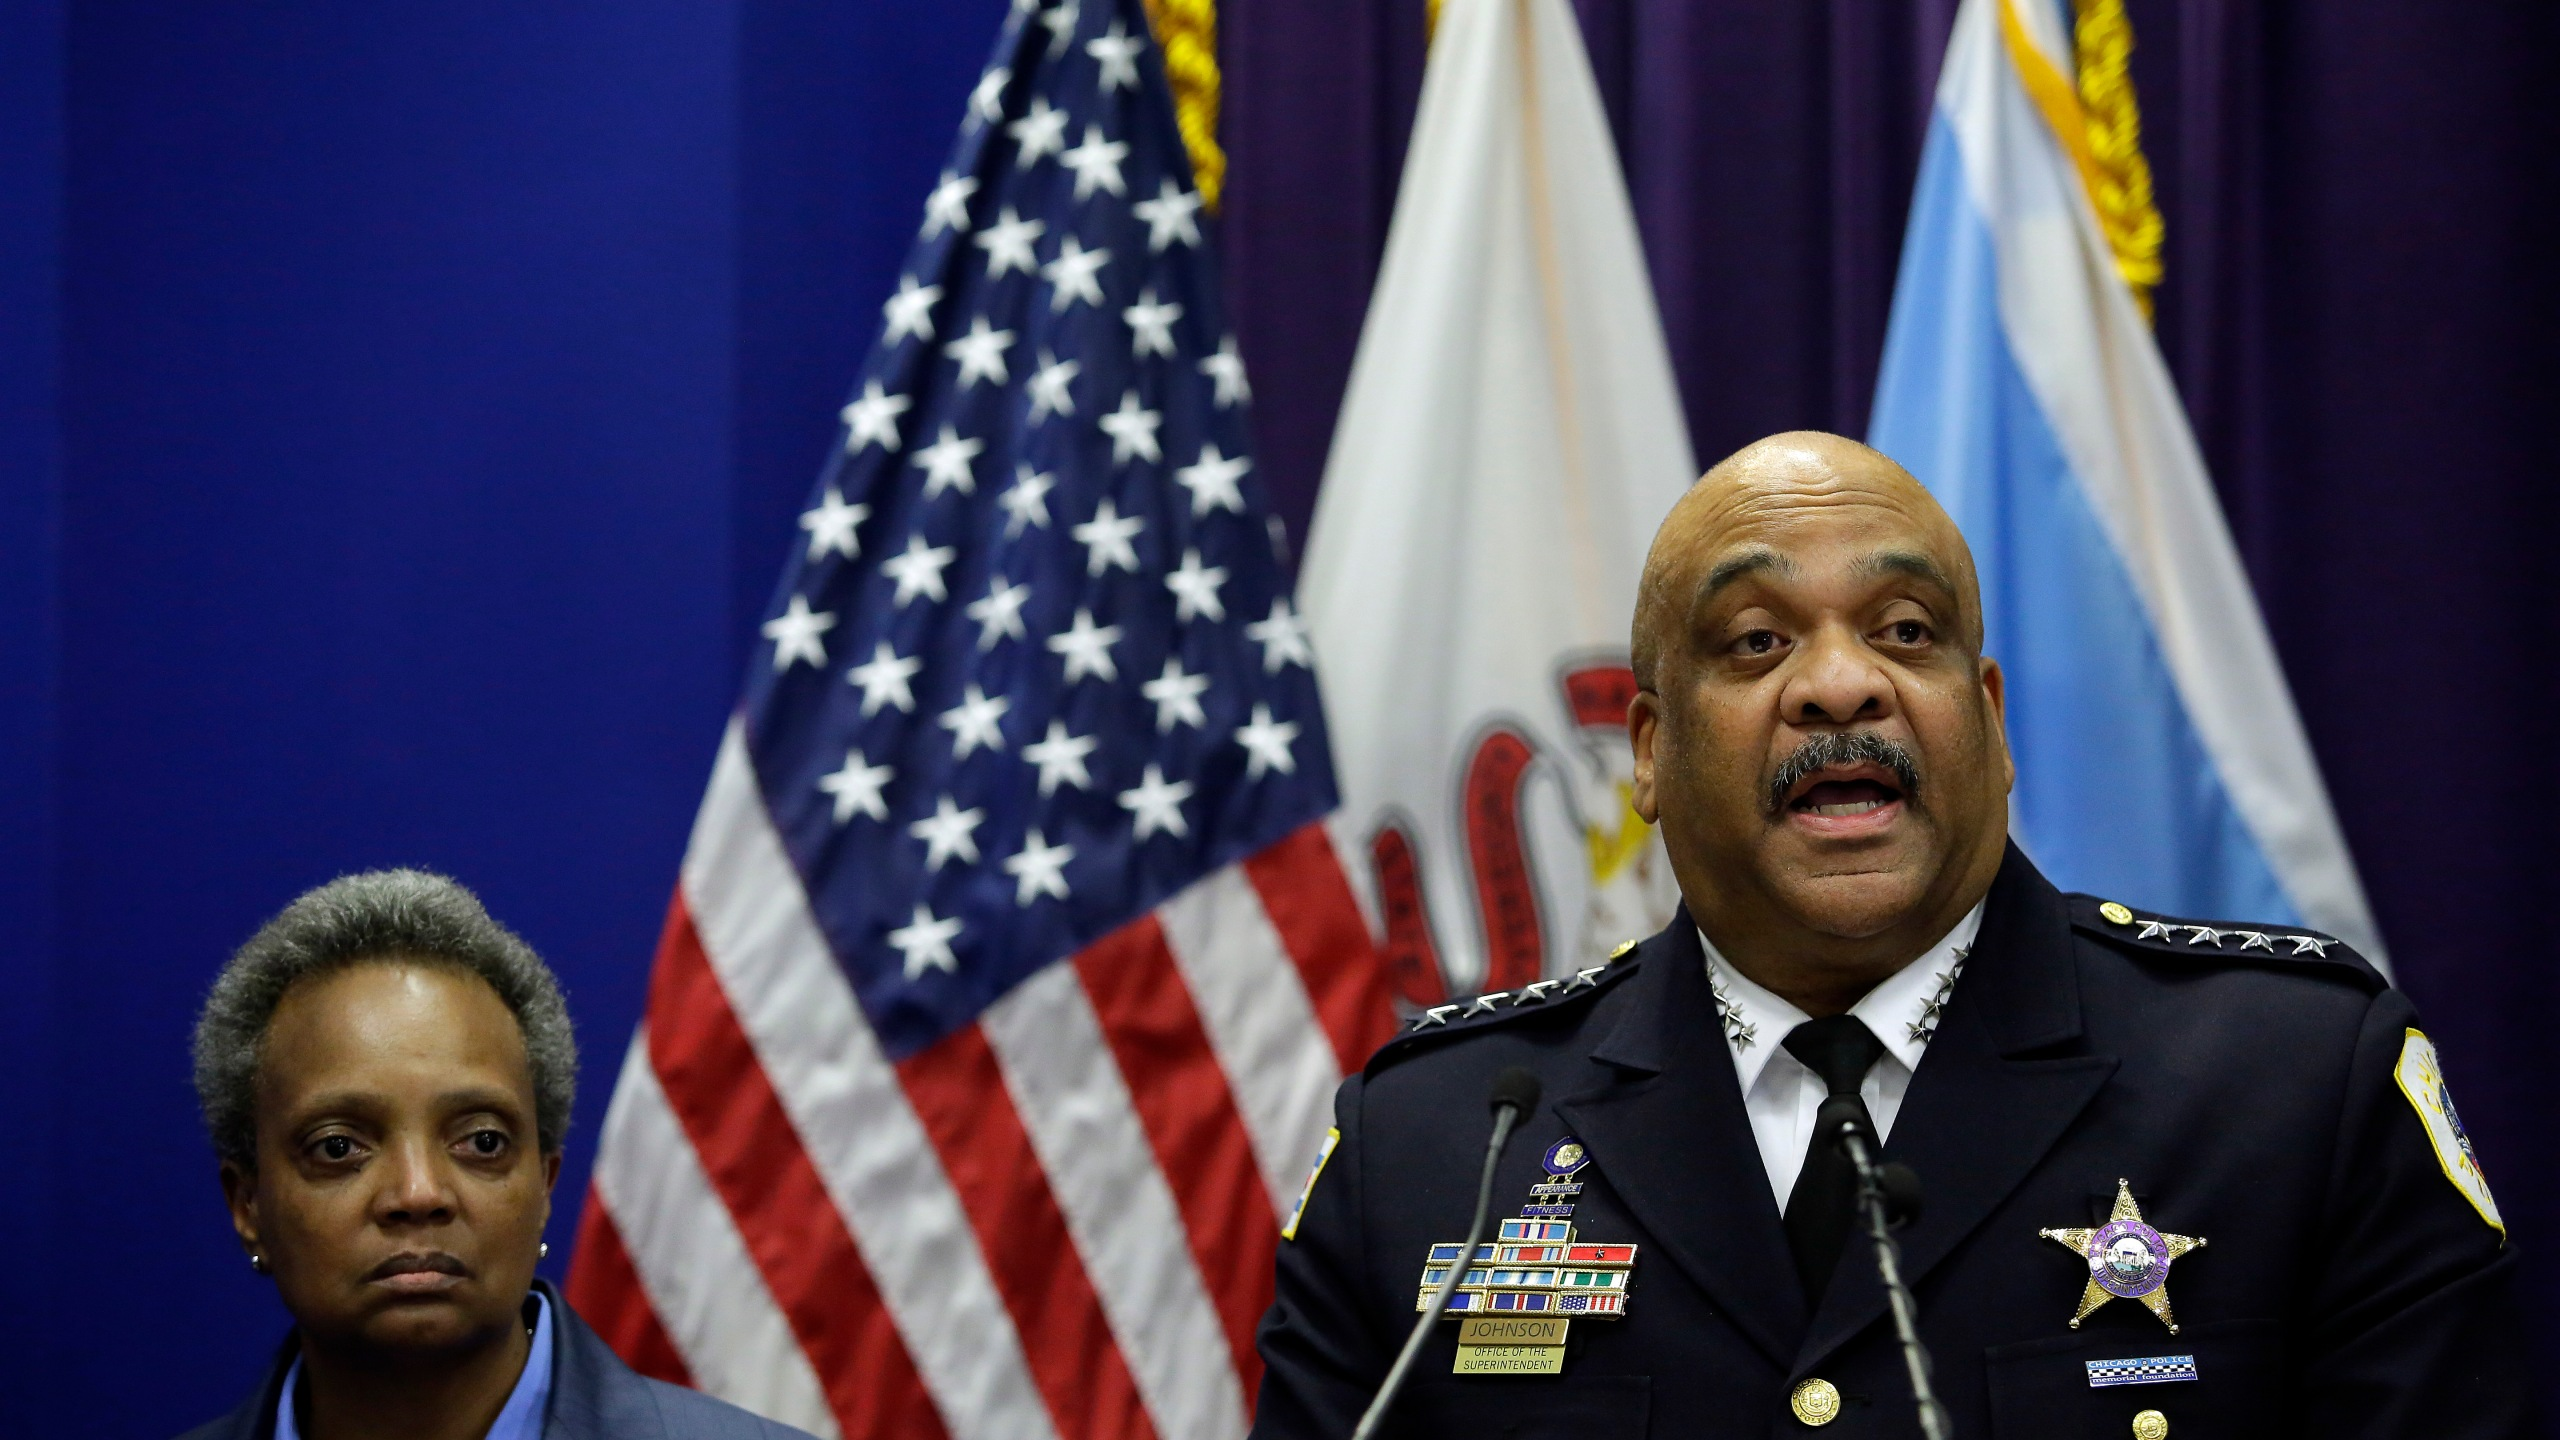 Chicago Police Department Superintendent Eddie Johnson announces his retirement during a news conference with Mayor Lori Lightfoot at the Chicago Police Department's headquarters on Nov. 7, 2019. (Credit: Joshua Lott/Getty Images)